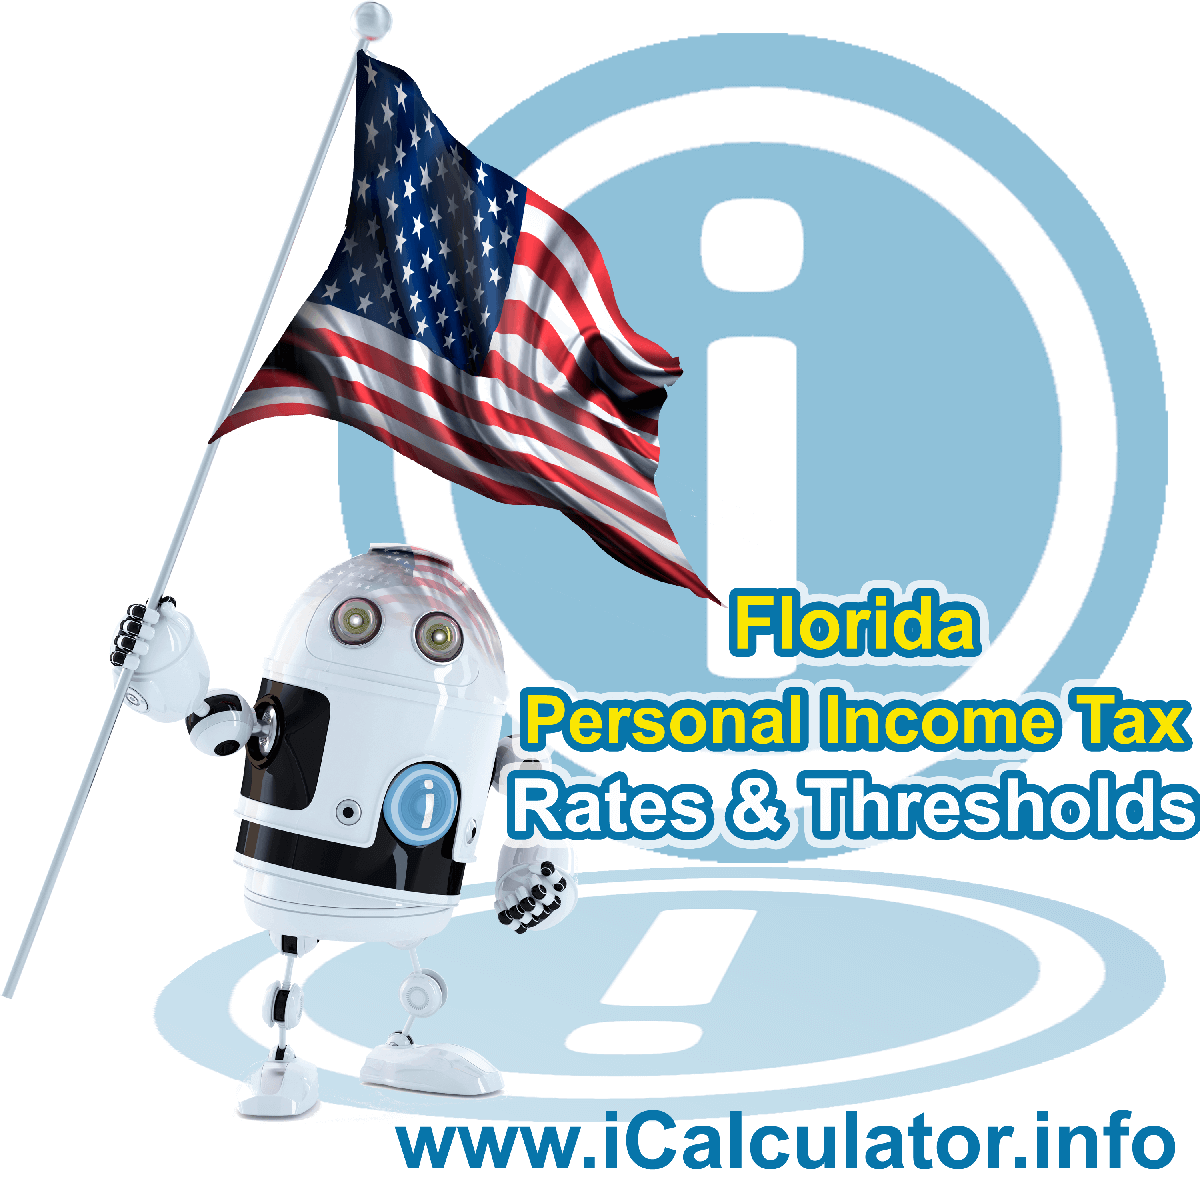 Florida State Tax Tables 2018. This image displays details of the Florida State Tax Tables for the 2018 tax return year which is provided in support of the 2018 US Tax Calculator